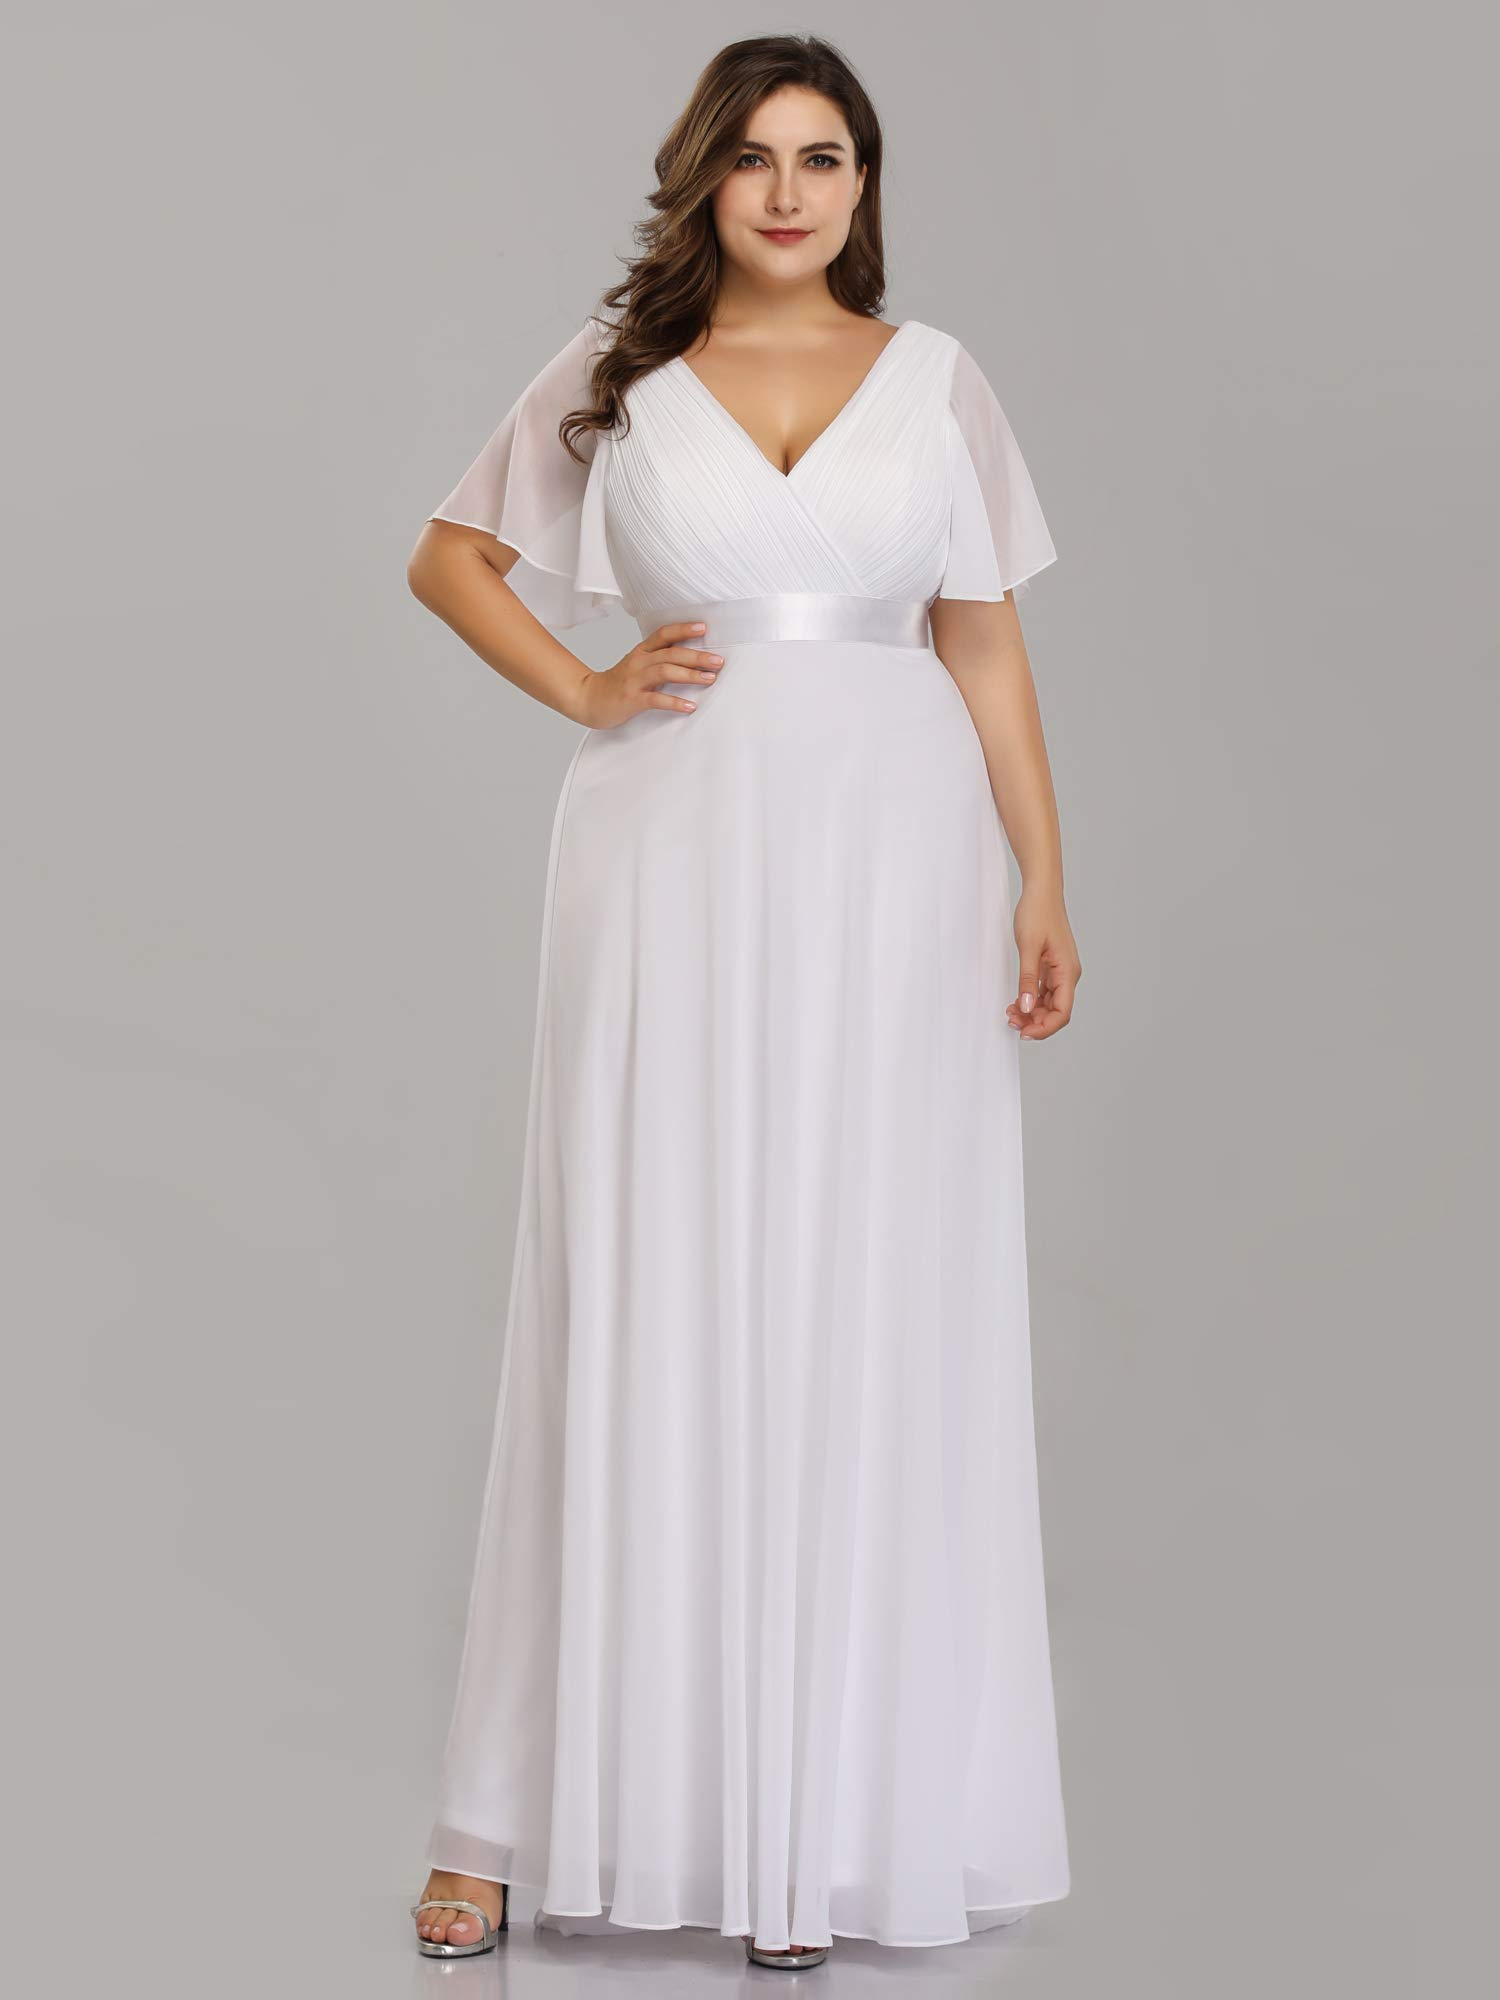 Alisapan Womens V-Neck Plus Size Formal Gowns Mother of The Bride ...